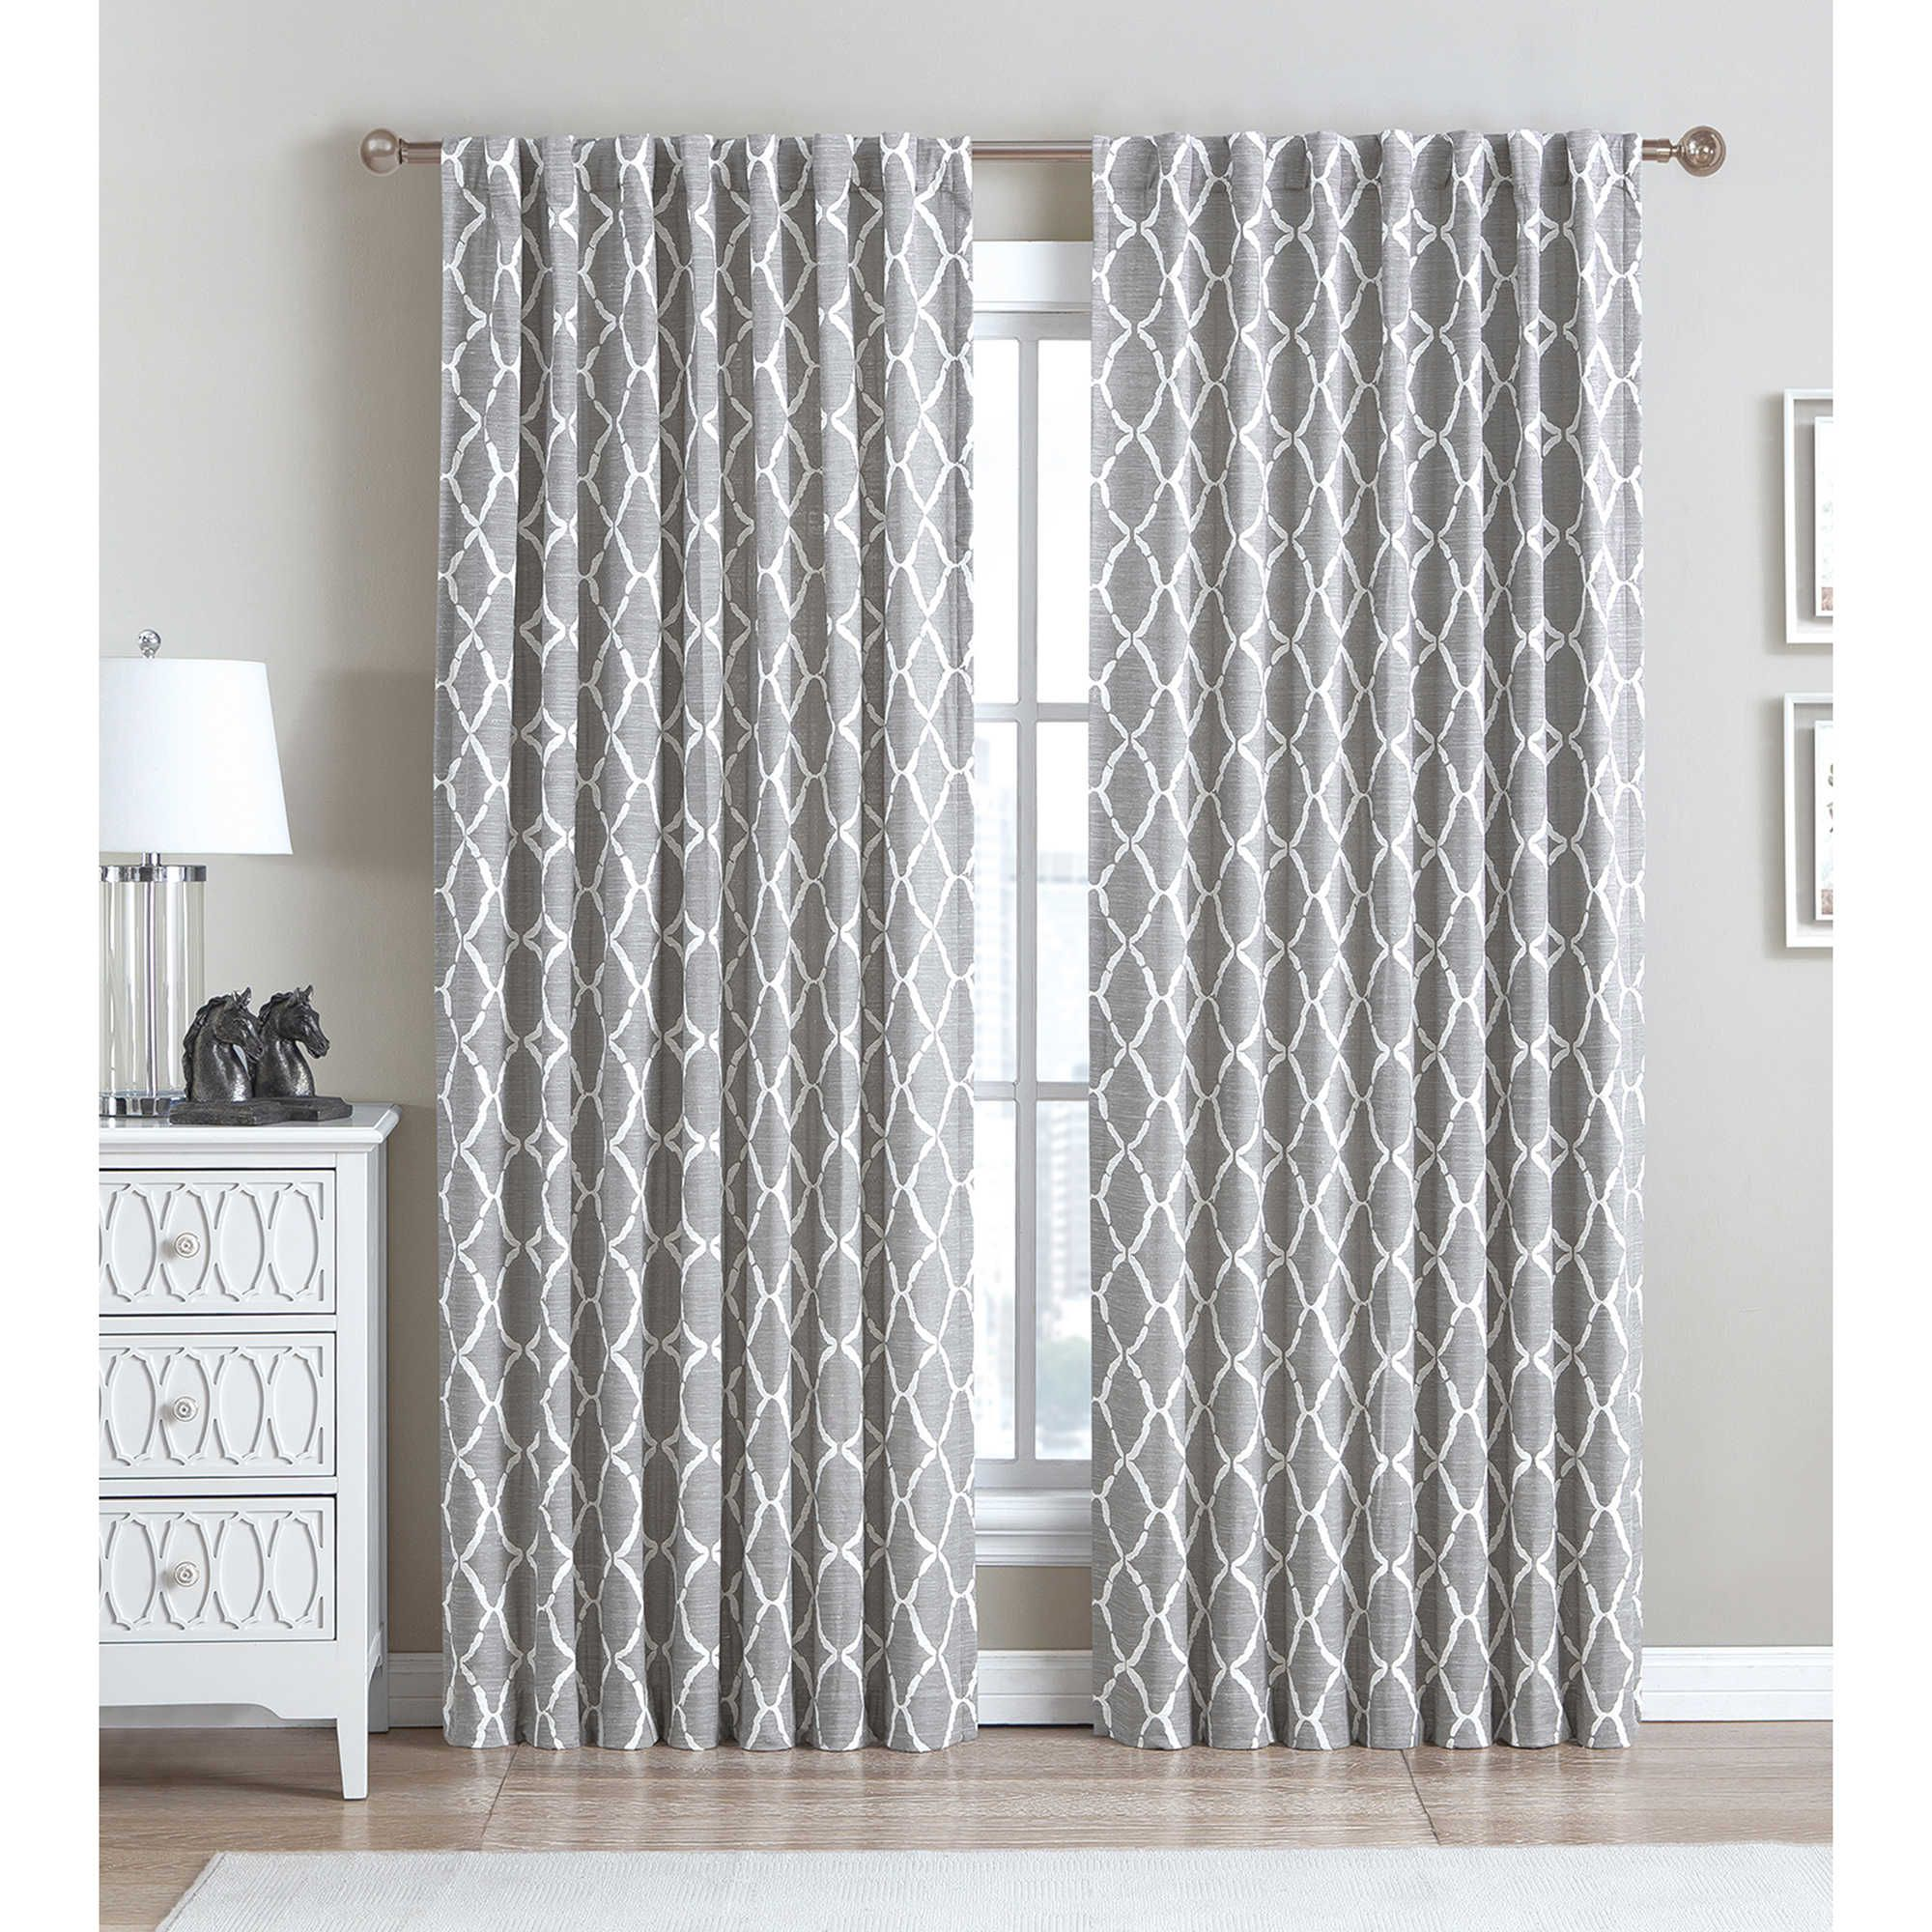 living long inch curtains room best for curtain window in decor your golden covering